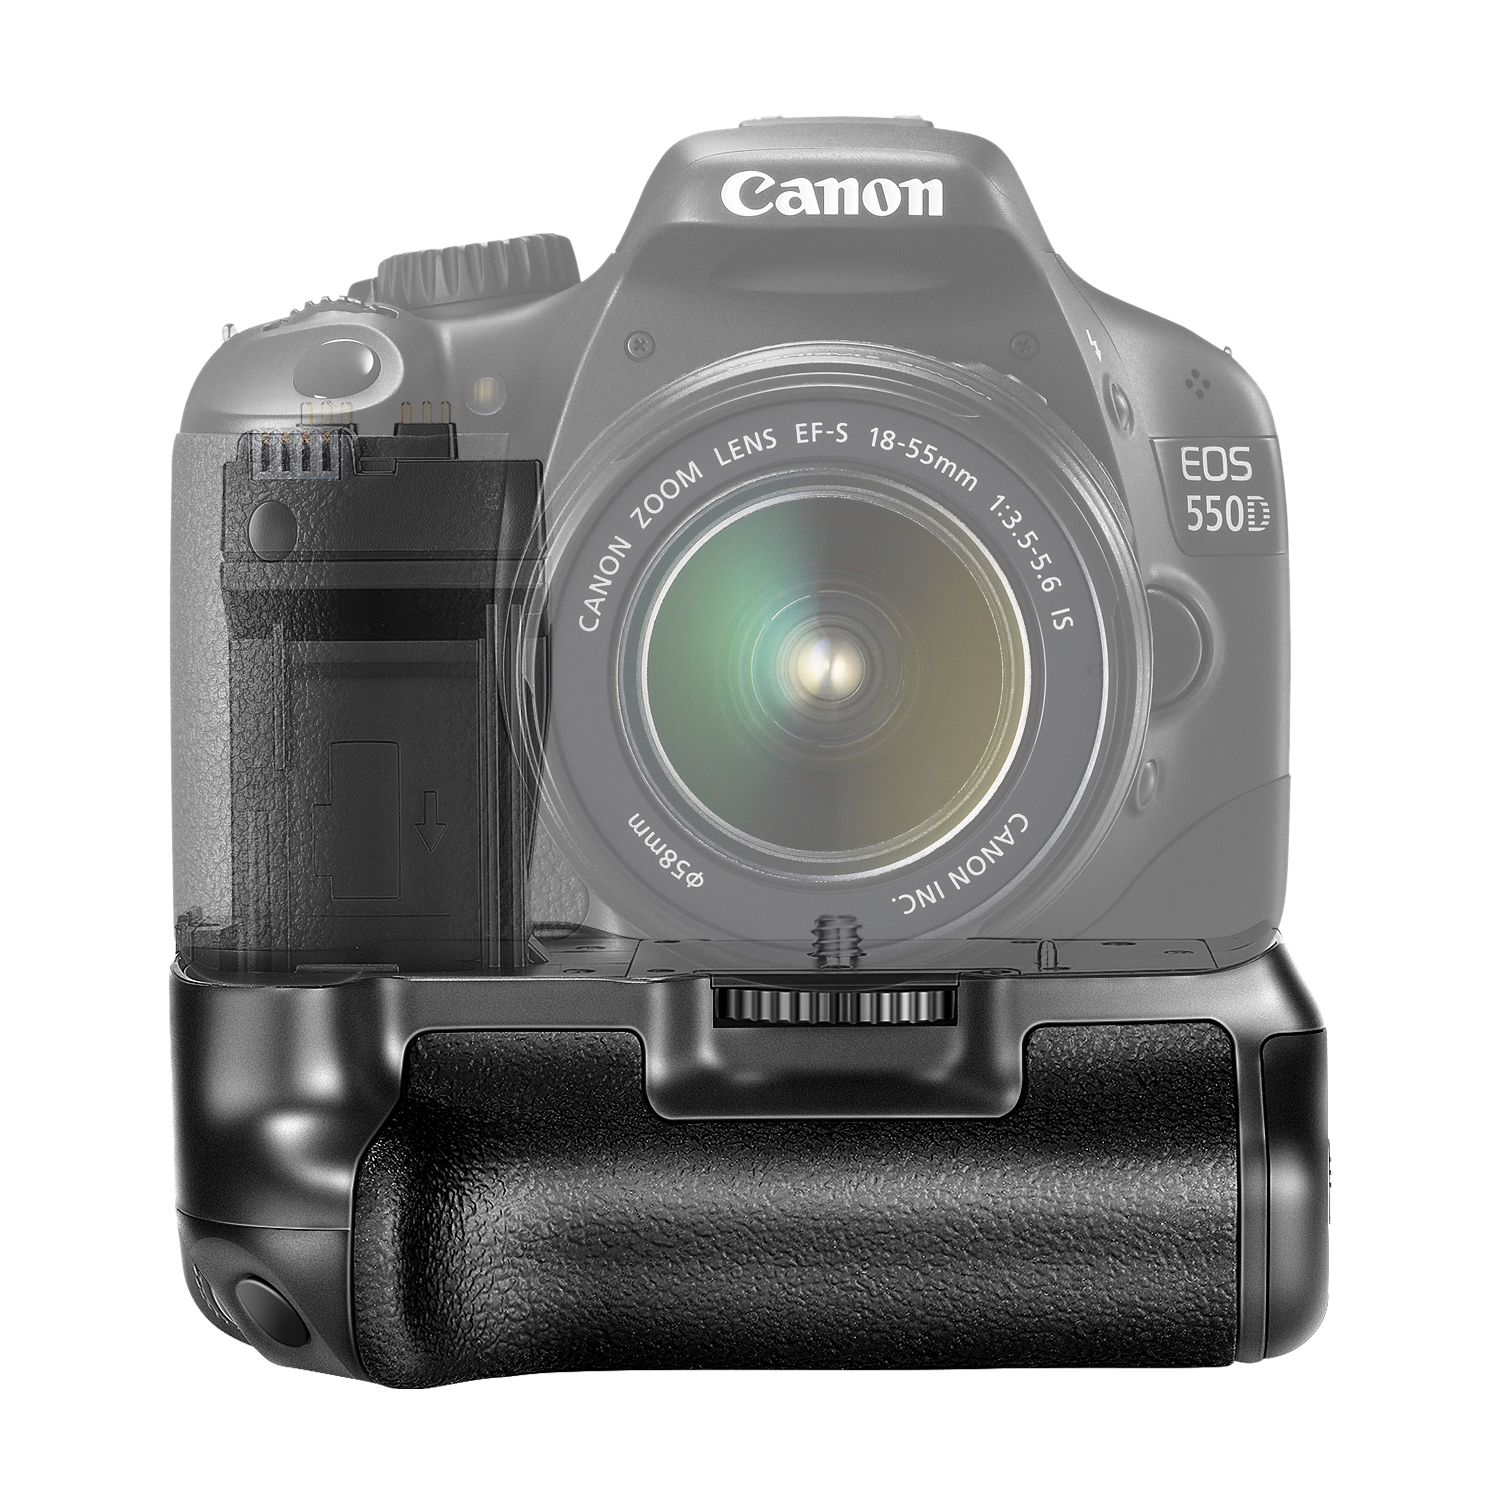 Neewer BG-E8 Replacement Battery Grip for Canon EOS 550D 600D 650D <font><b>700D</b></font>/ Rebel T2i T3i T4i T5i SLR Cameras image